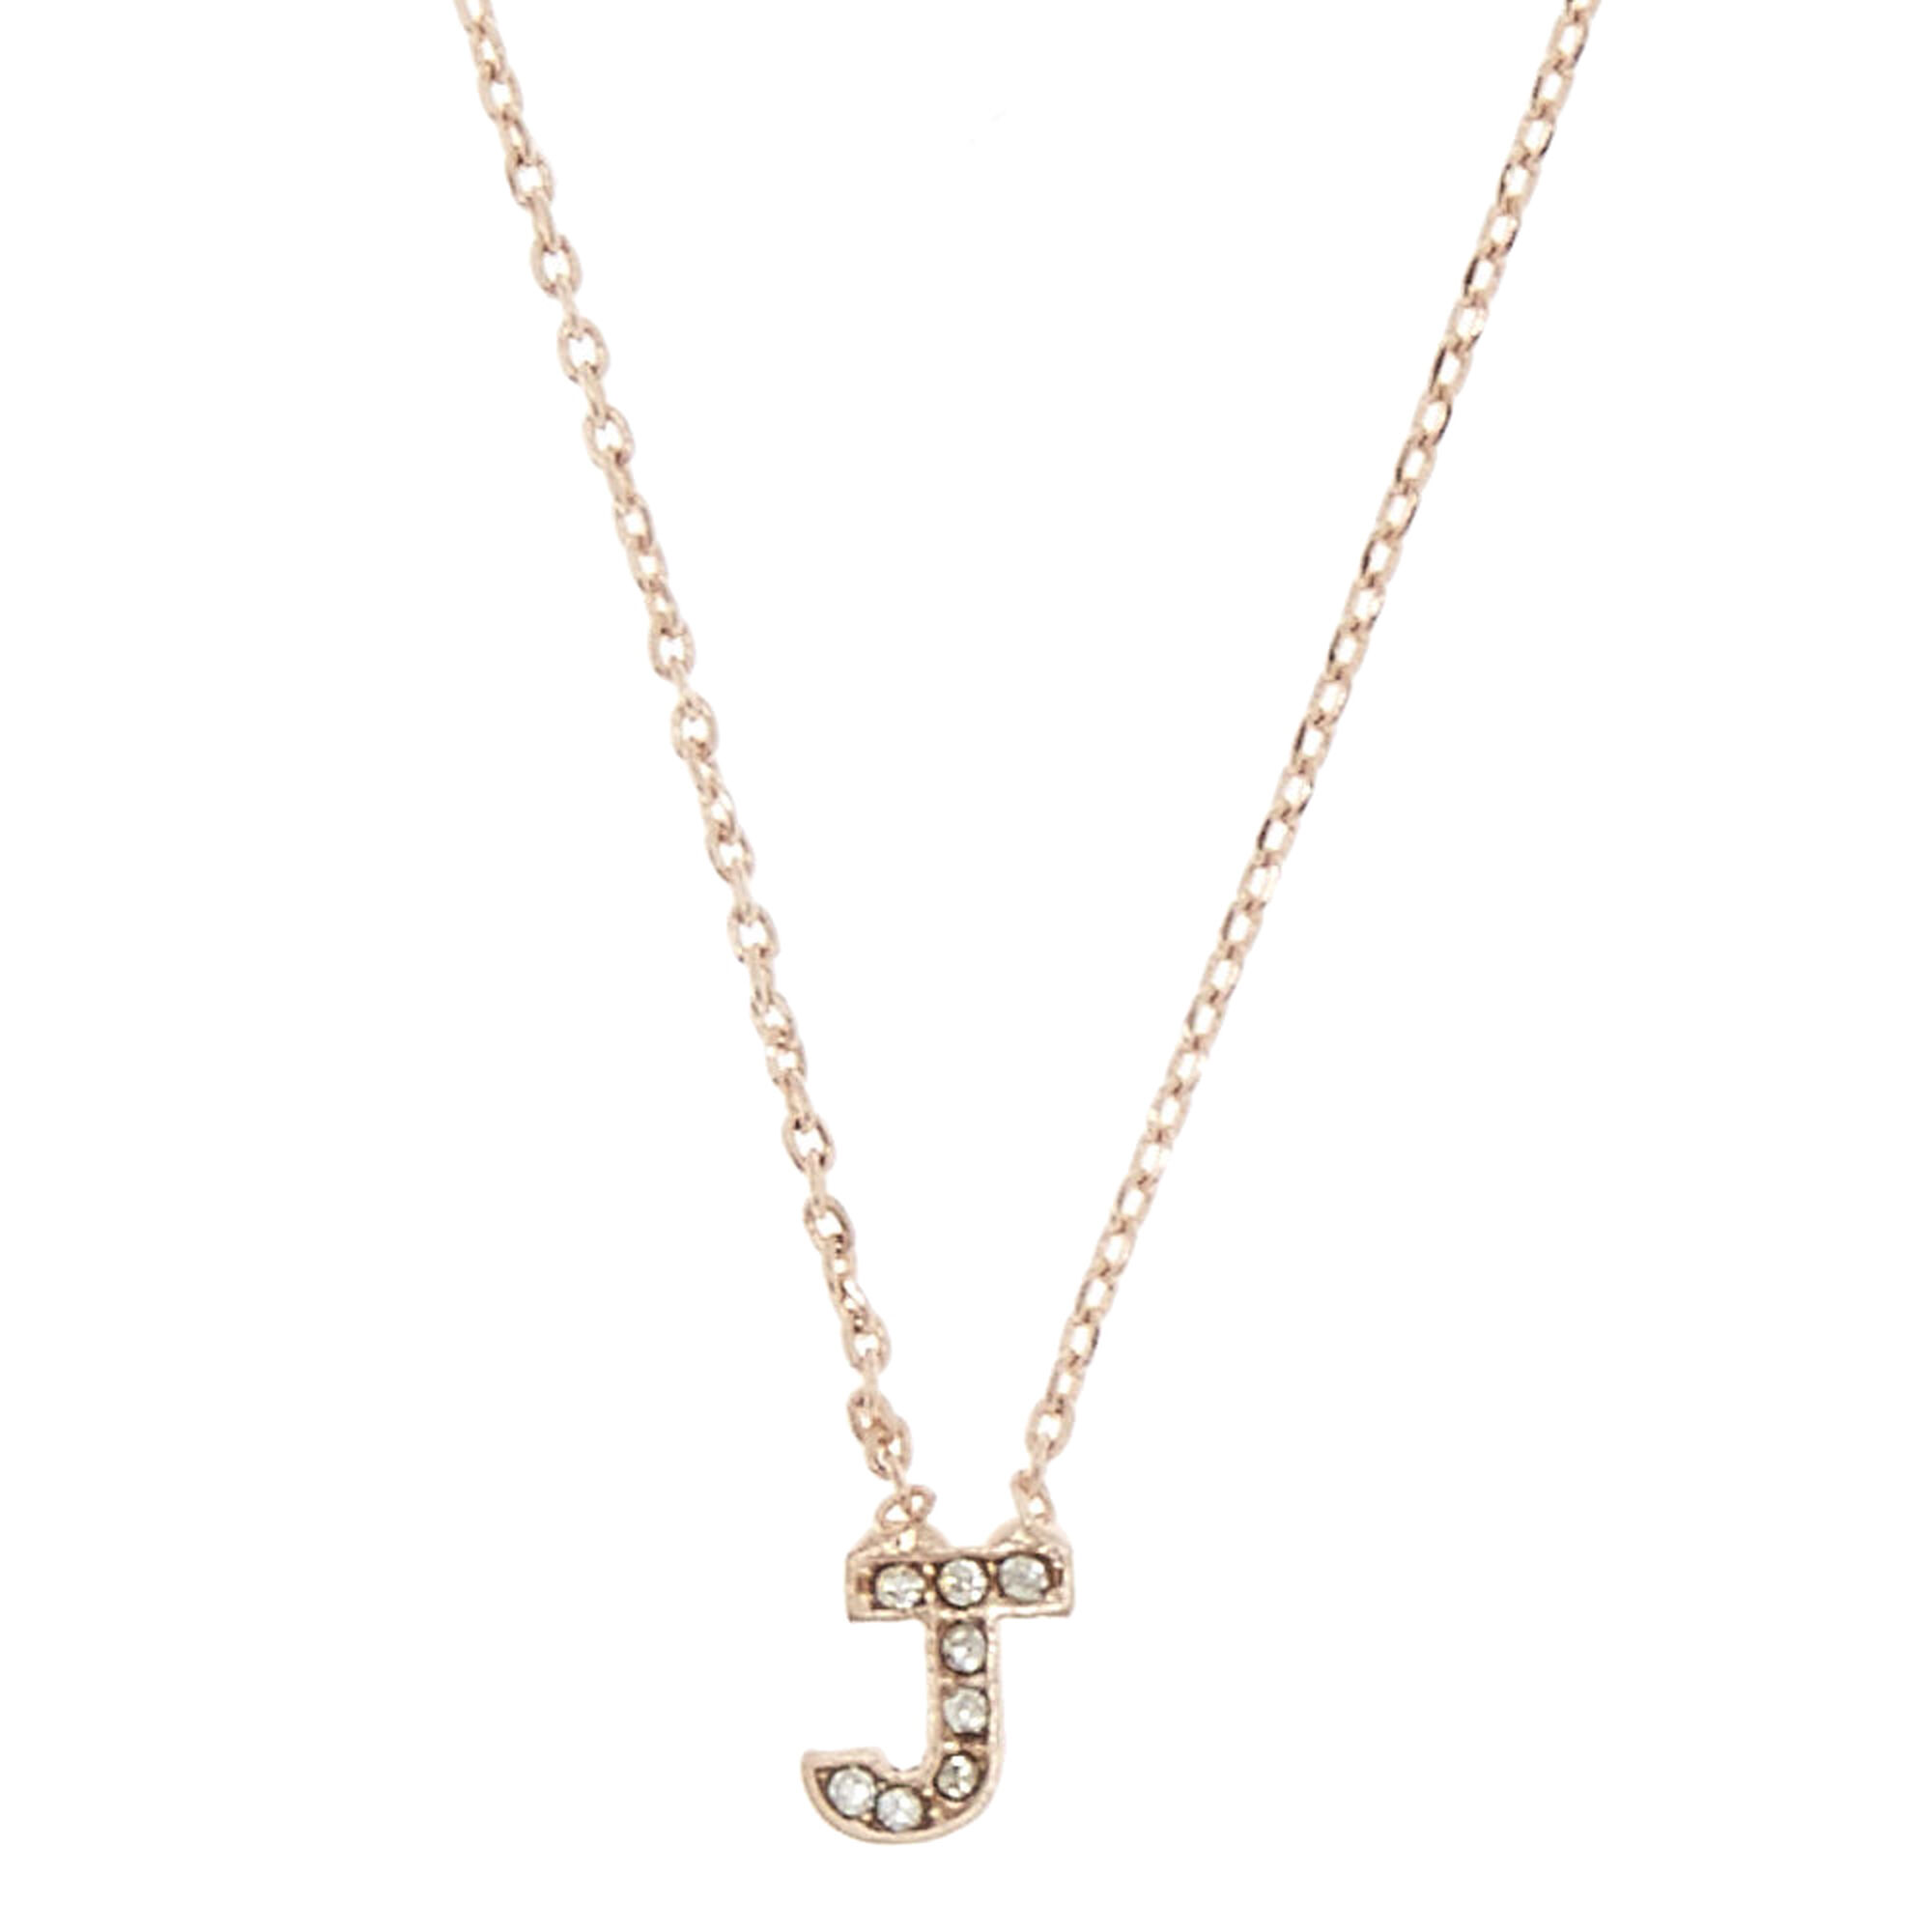 Rose gold tone j initial pendant necklace icing us rose gold tone quotjquot aloadofball Images